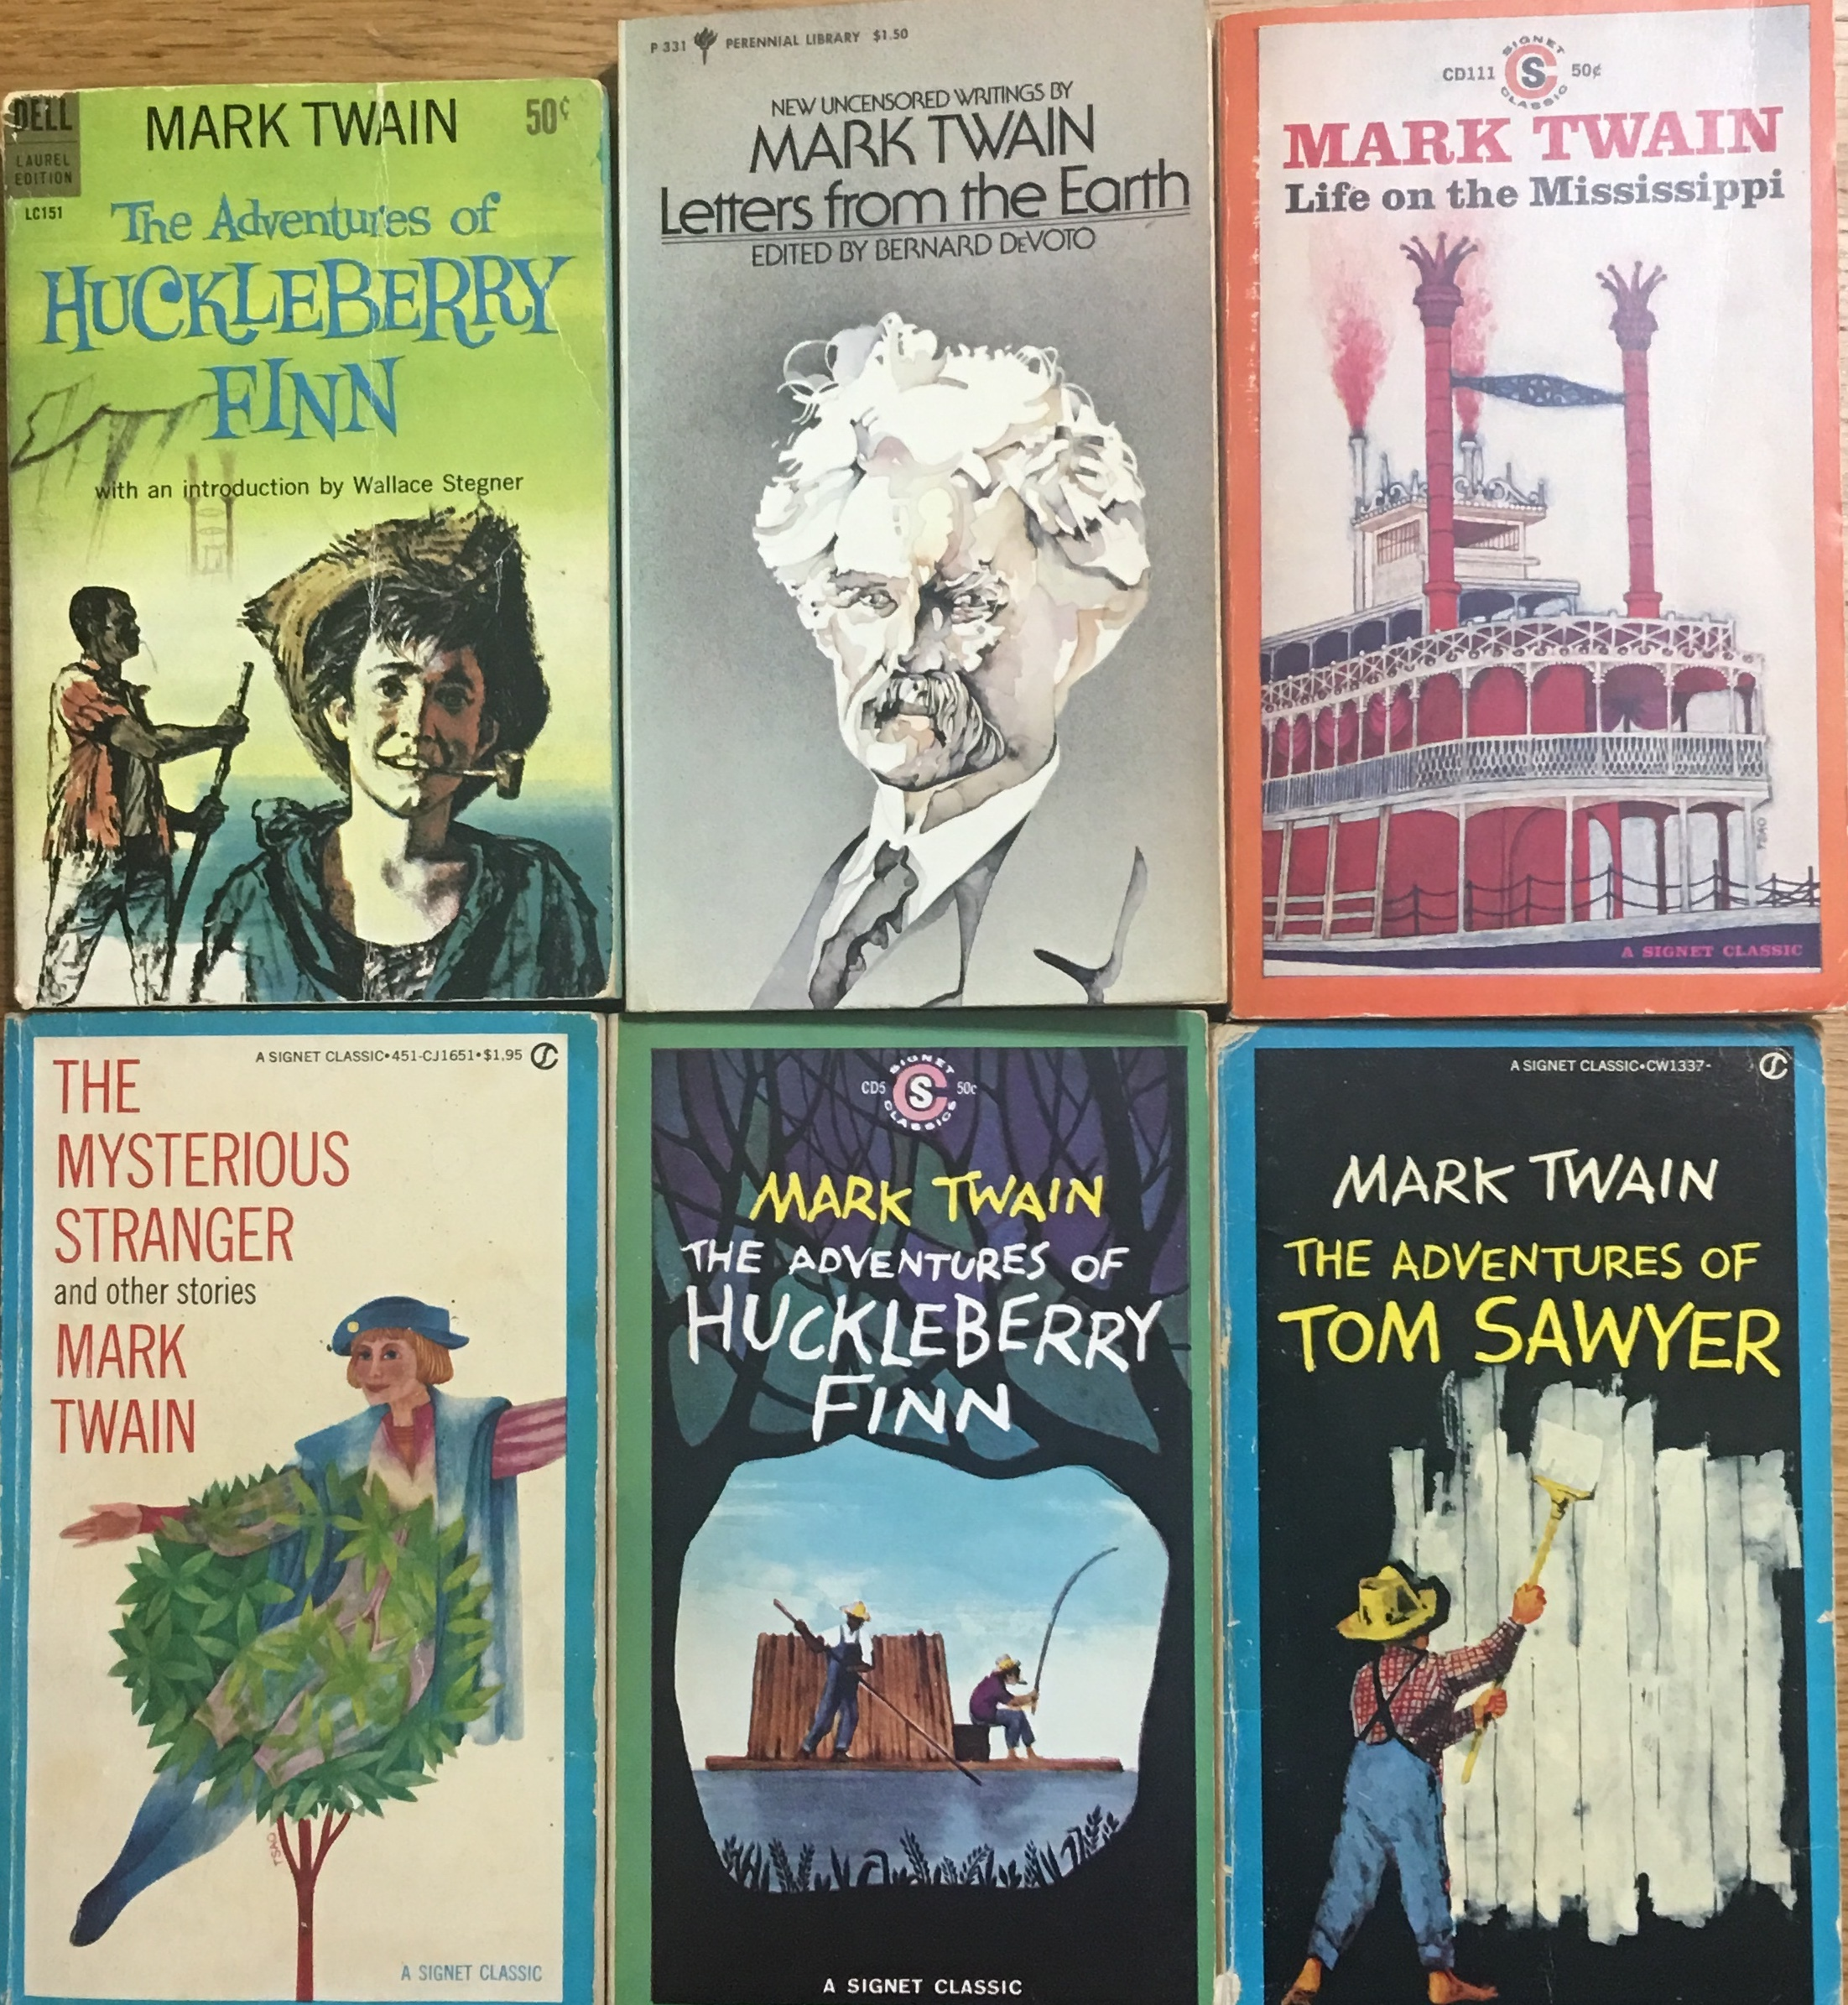 Image for 7 Mark Twain Books: the Adventures of Huckleberry Finn; Letters from the Earth; Life on the Mississippi; the Mysterious Stranger and Other Stories, the Adventures of Huckleberry Finn, the Adventures of Tom Sawyer, the Innocents Abroad, Roughing It